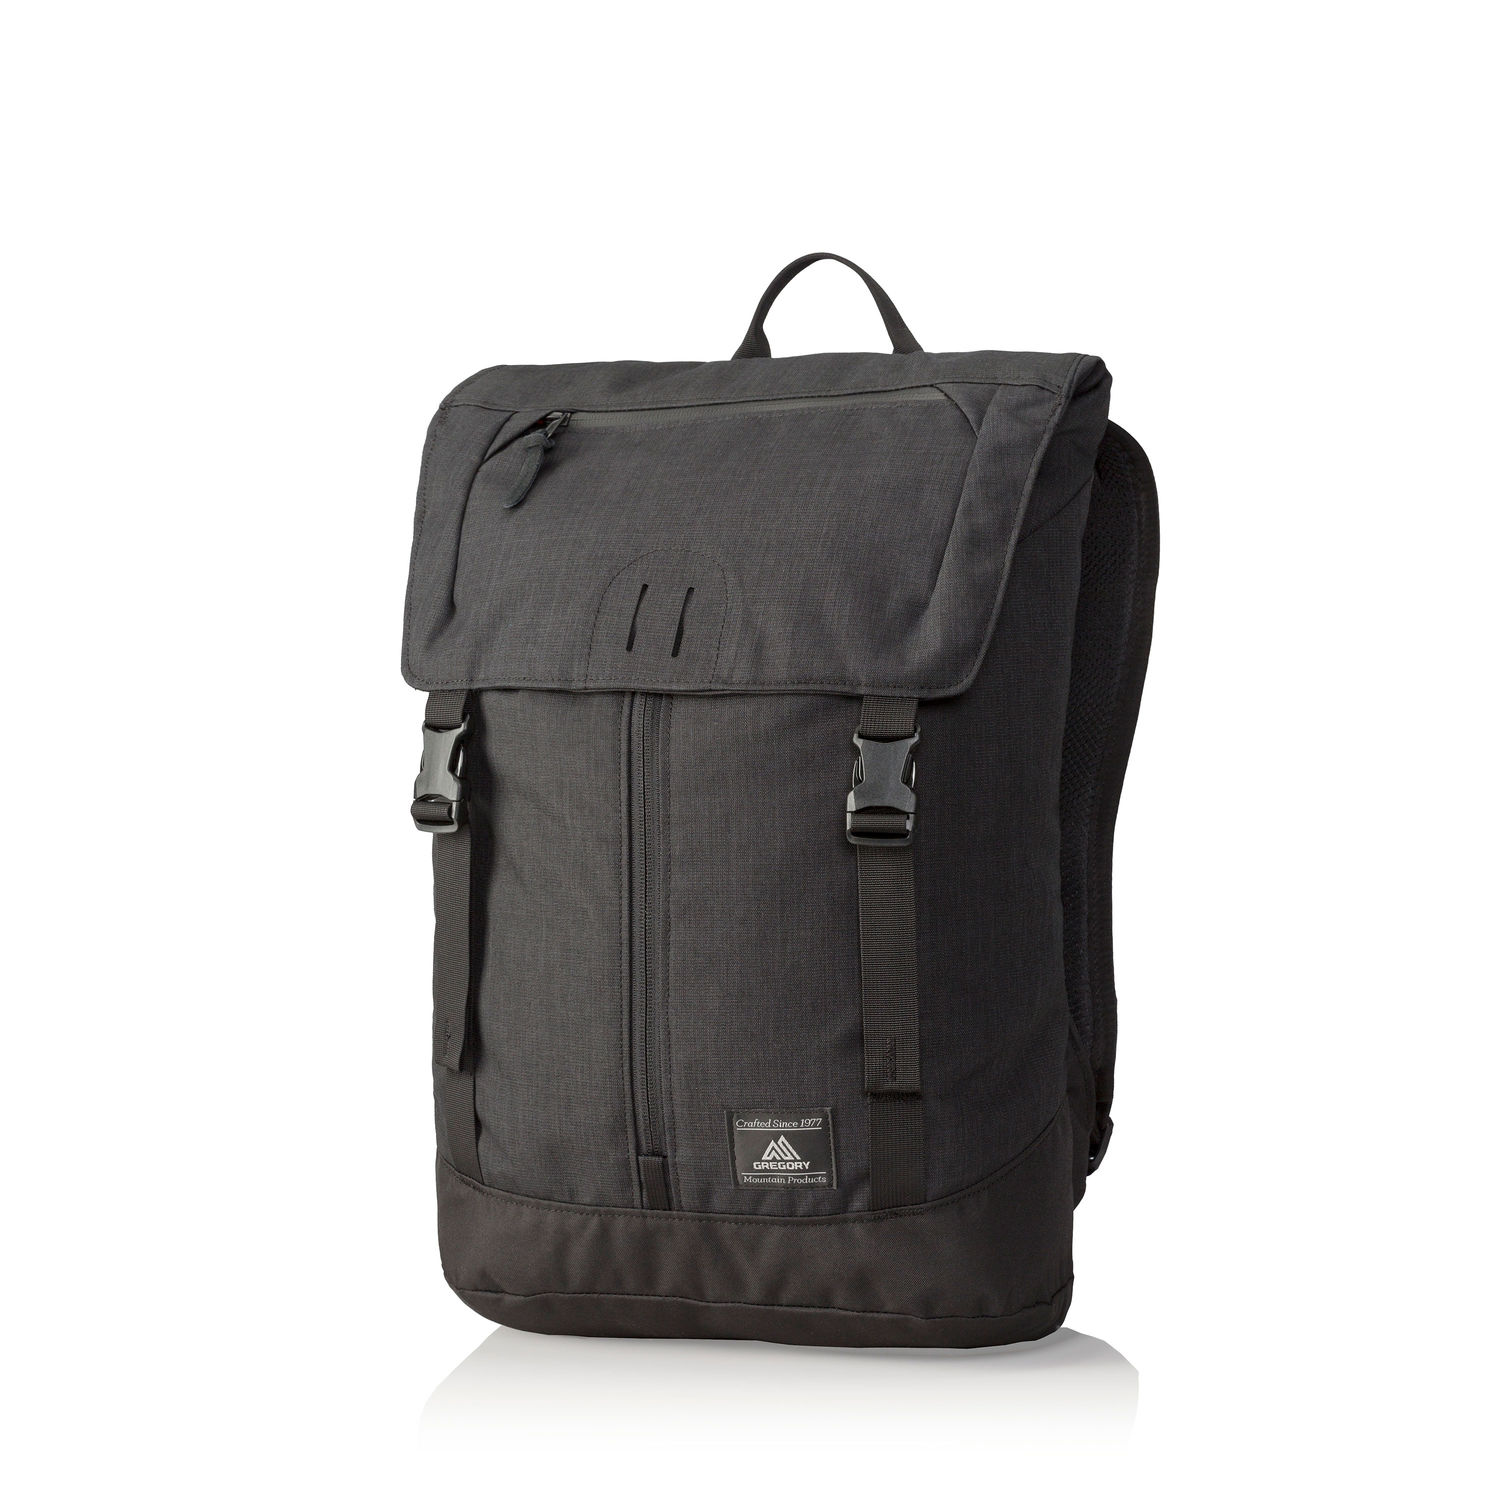 GREGORY Explore Baffin 23L - Ebony Black